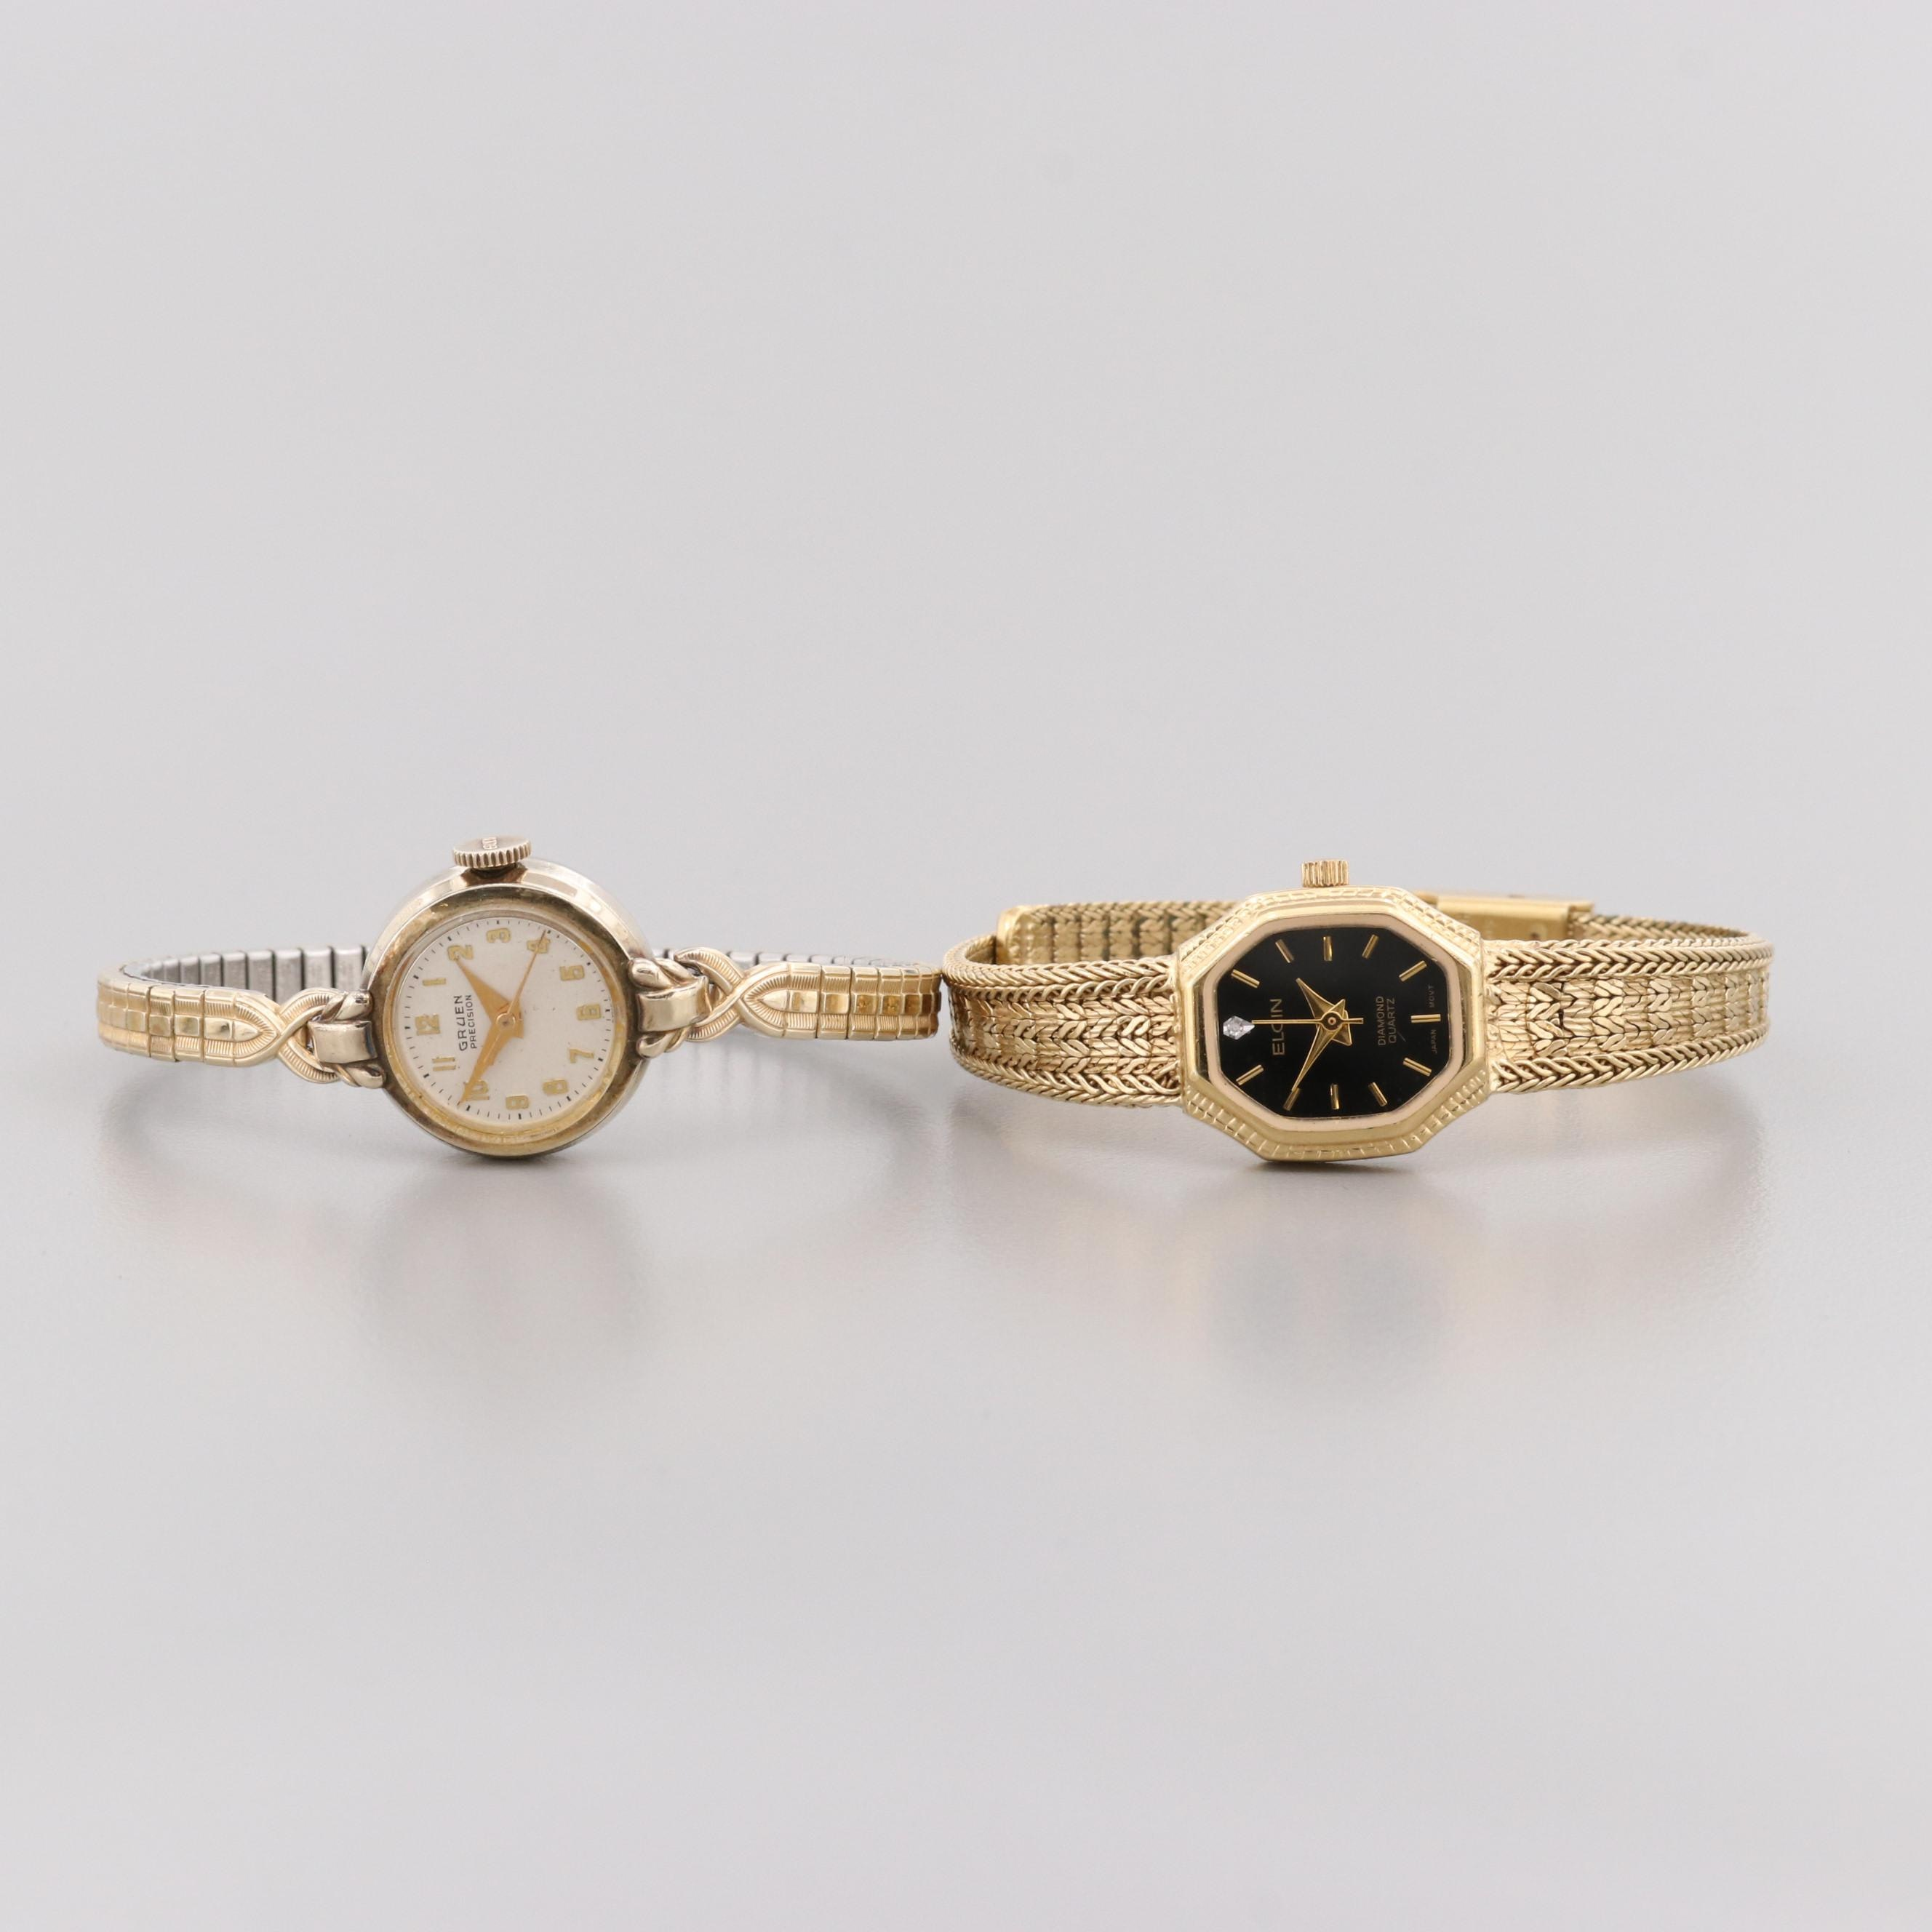 Gold Tone Wristwatches Featuring Gruen Stem Wind and Elgin Quartz With Diamond